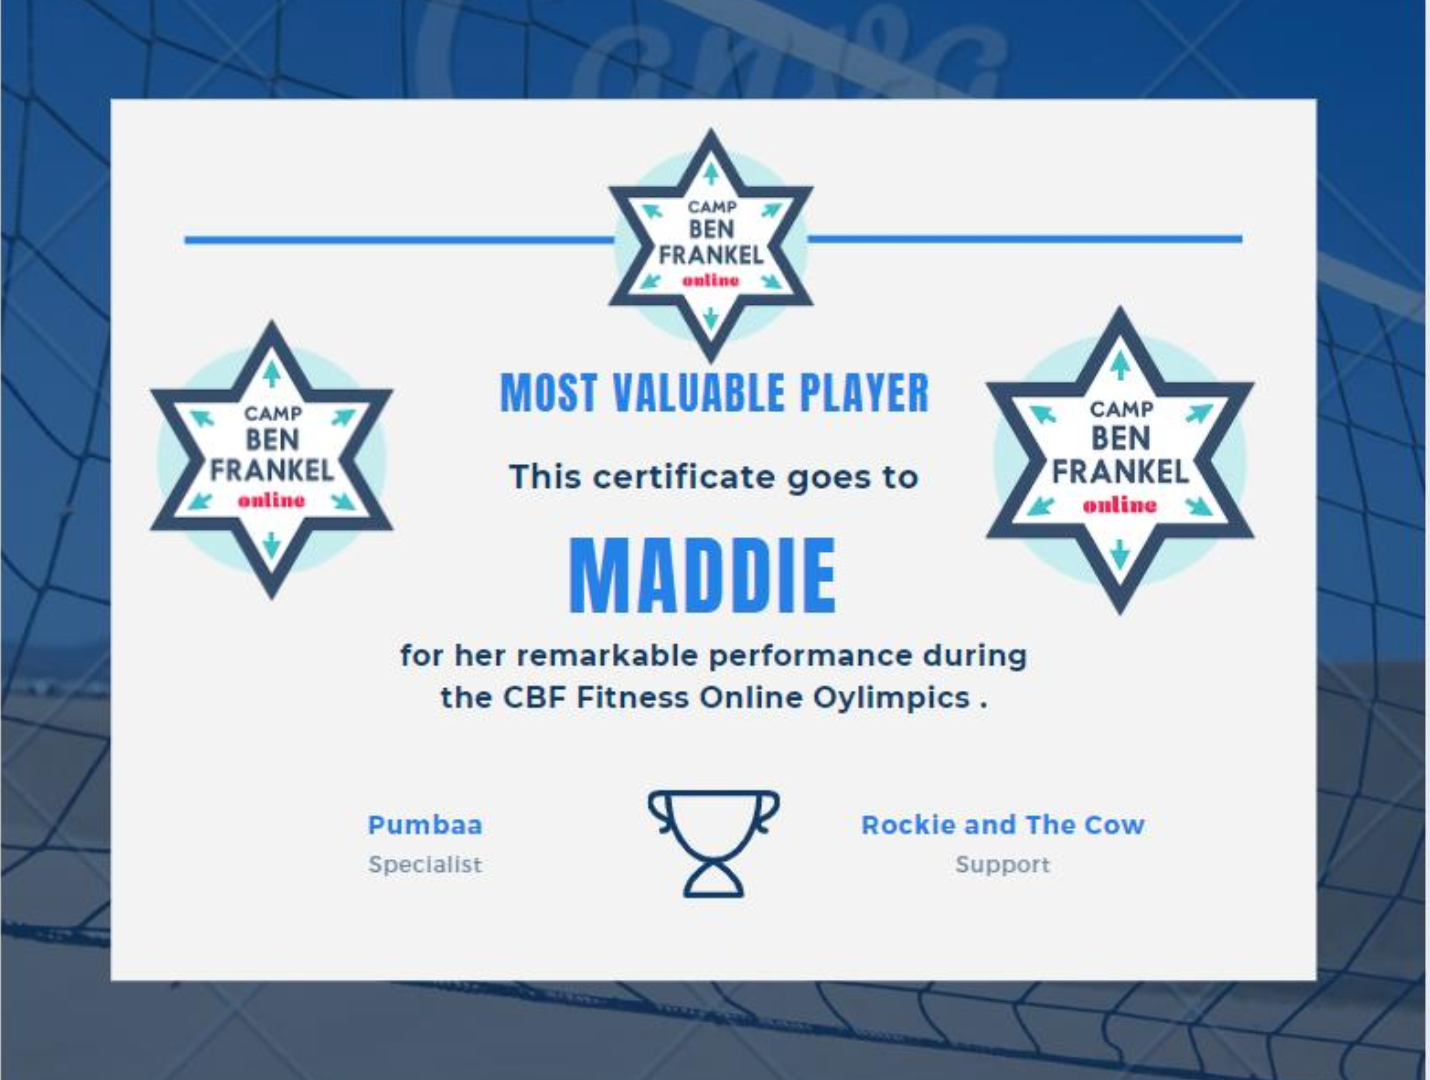 Maddie - Most Valuable Player Award